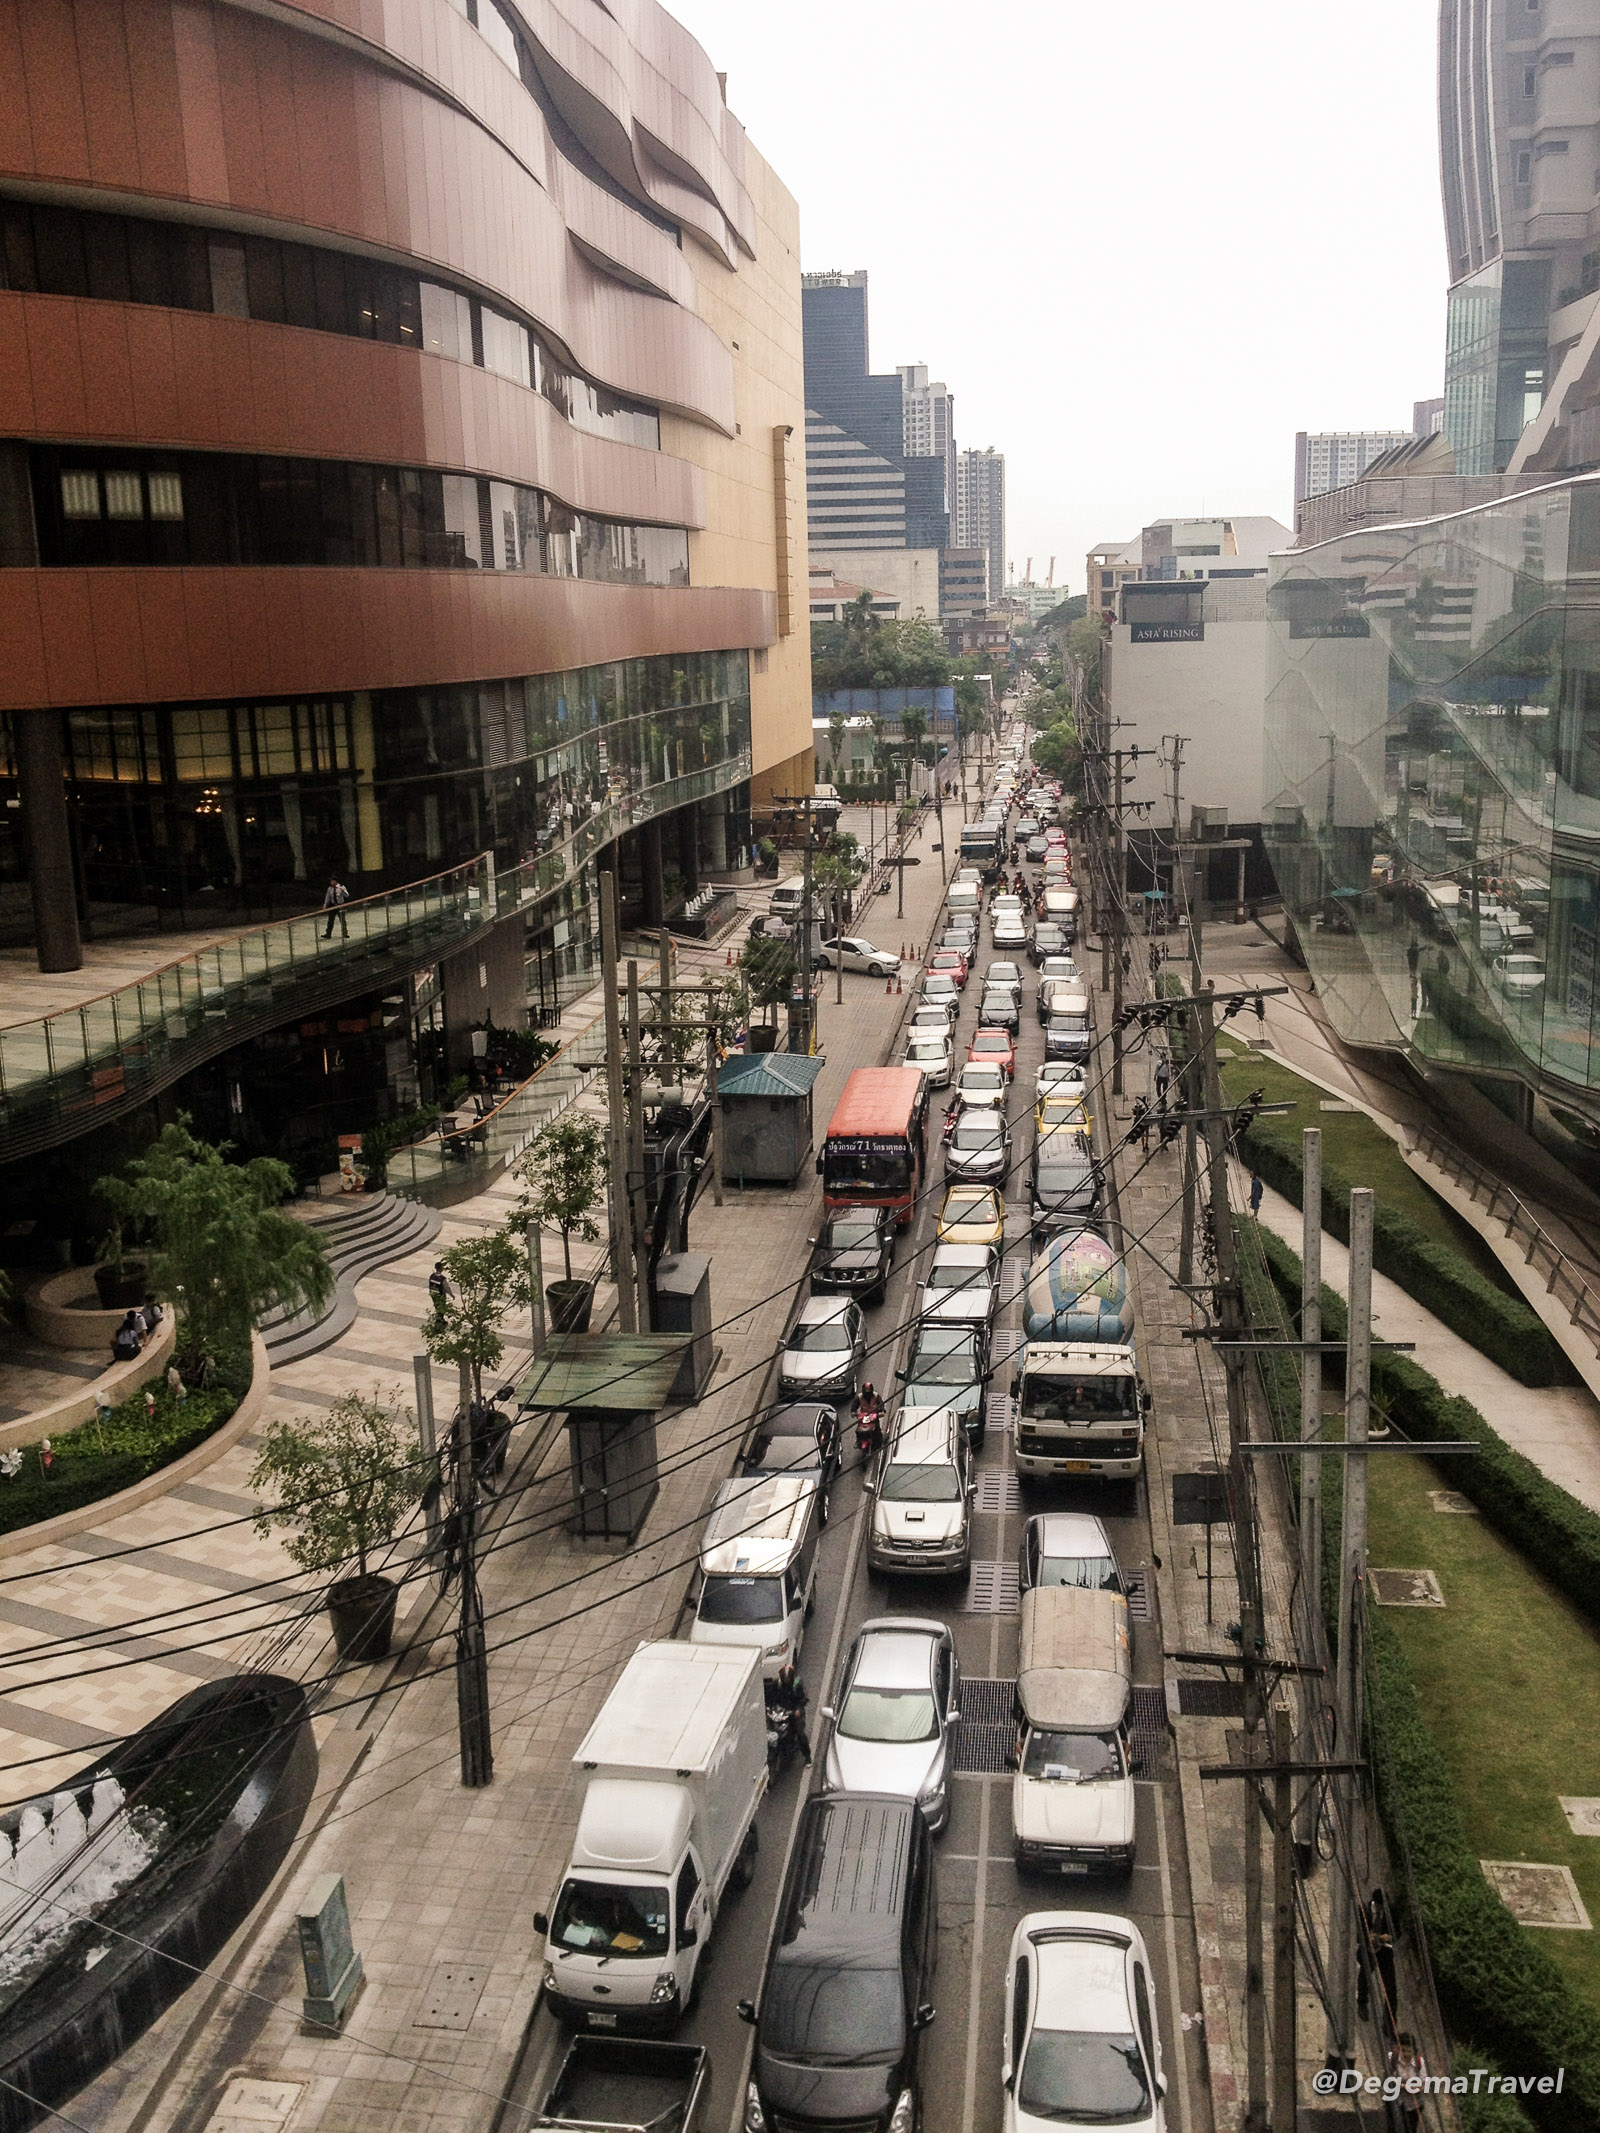 A traffic jam in Ekkamai, Bangkok, Thailand